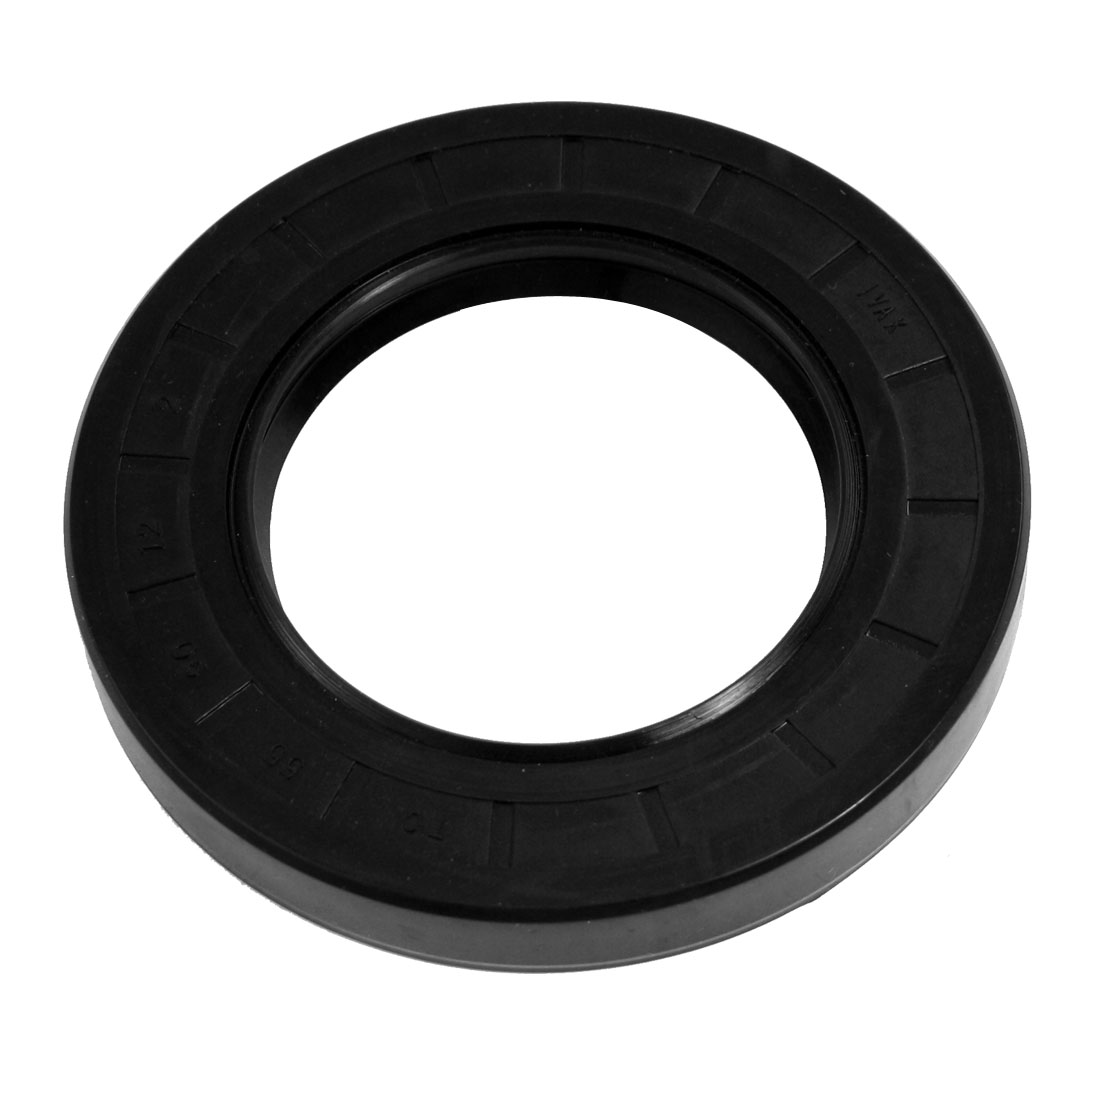 TC Steel Spring NBR Double Lip Oil Shaft Seal 55mm x 90mm x 12mm